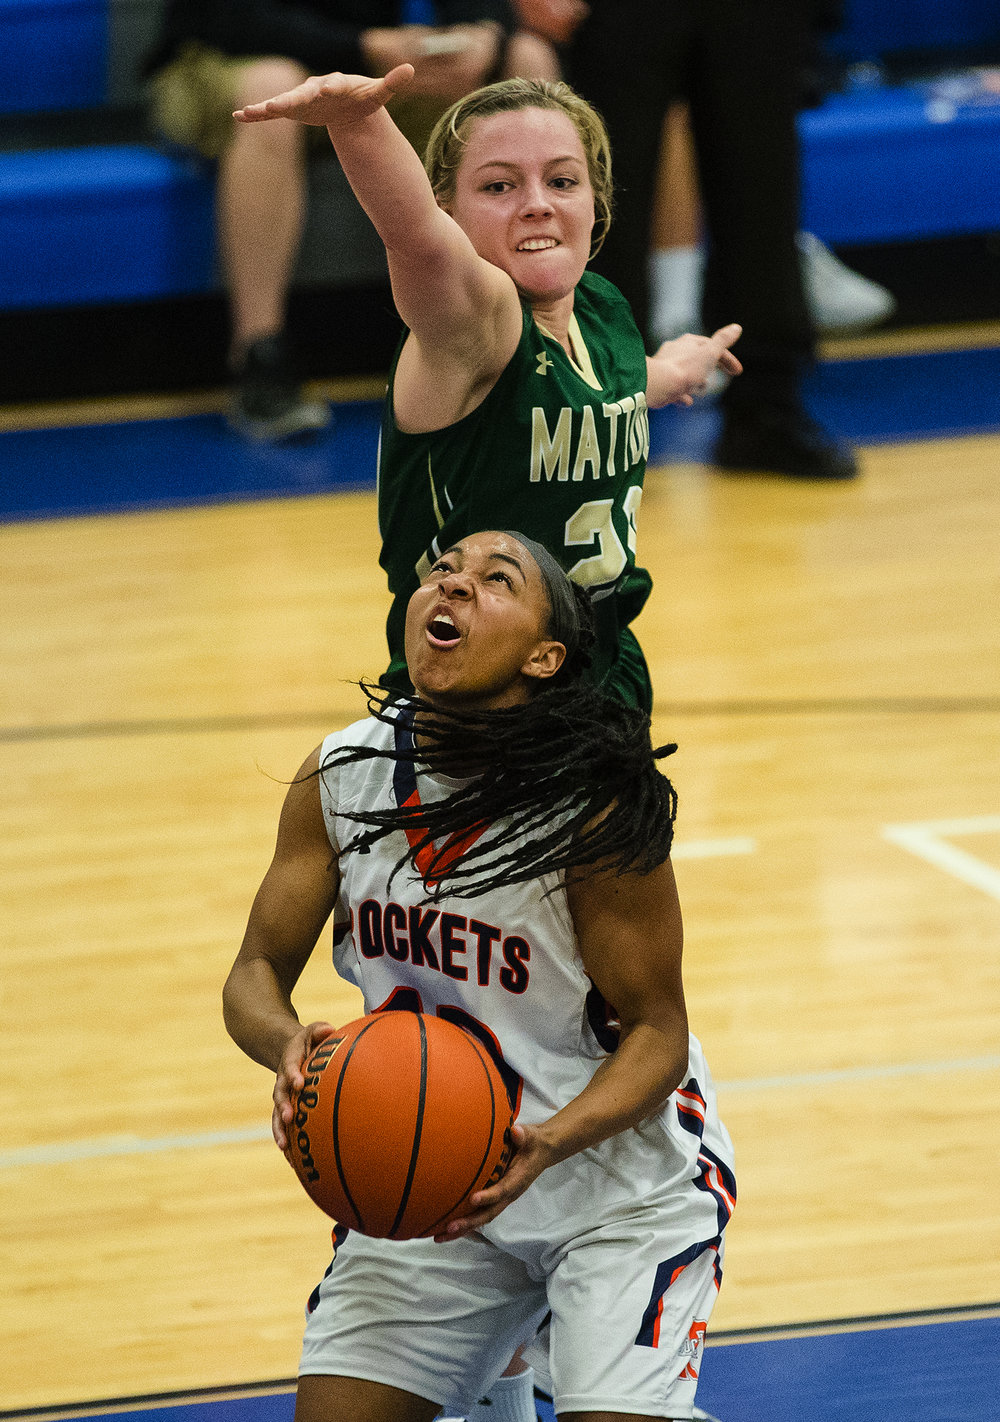 Rochester's Havilyn Dulin grabs a rebound and goes up for a shot in front of Mattoon's Paisley Meyer during the Class 3A Decatur MacArthur Sectional title game at Decatur MacArthur High School February 23, 2017. [Ted Schurter/The State Journal-Register]